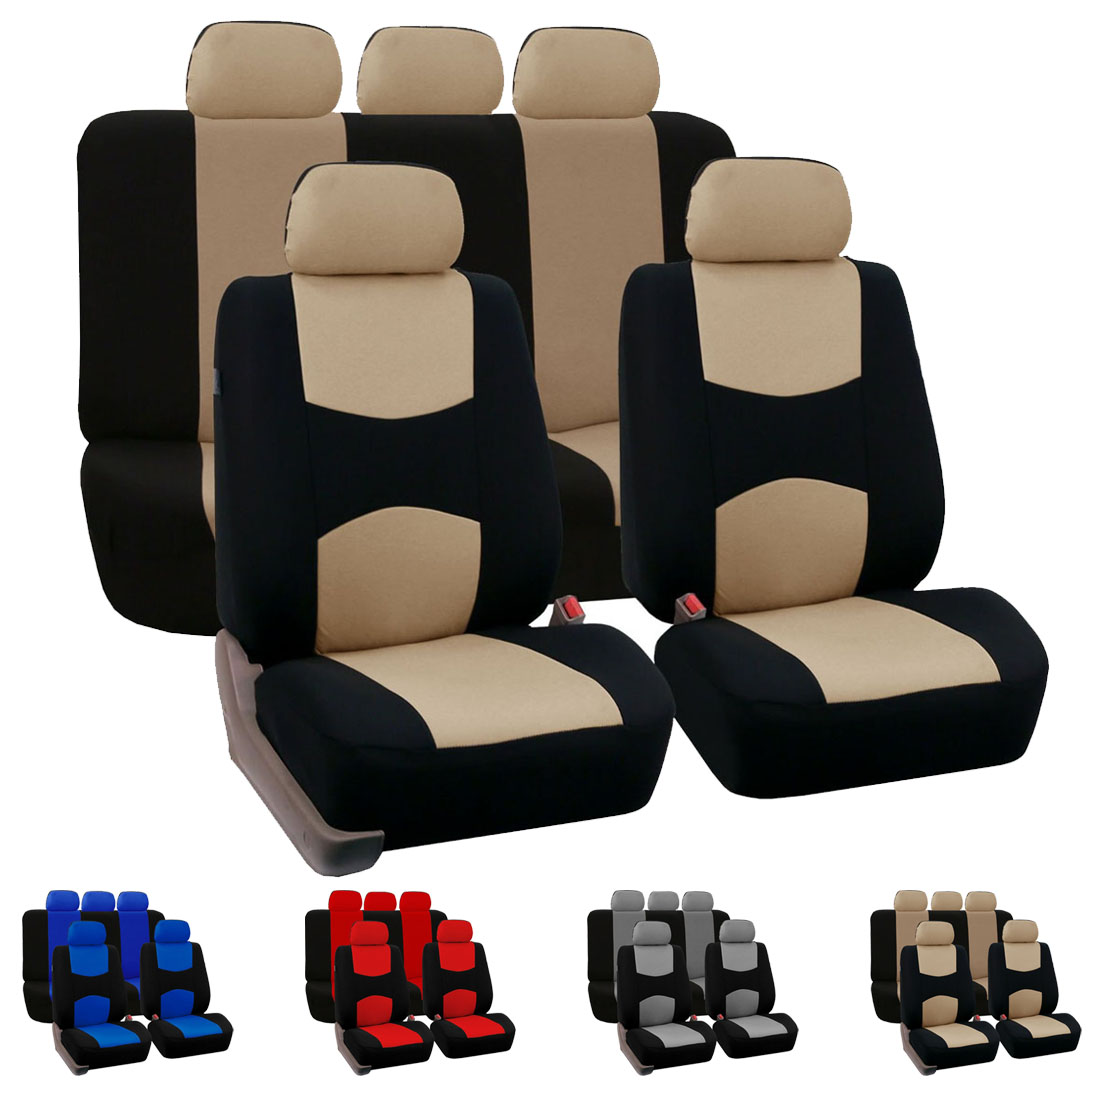 Dewtreetali Full Set Car Seat Covers Universal Fit Car Seat Protectors Auto Interior Accessories Decoration Car Styling